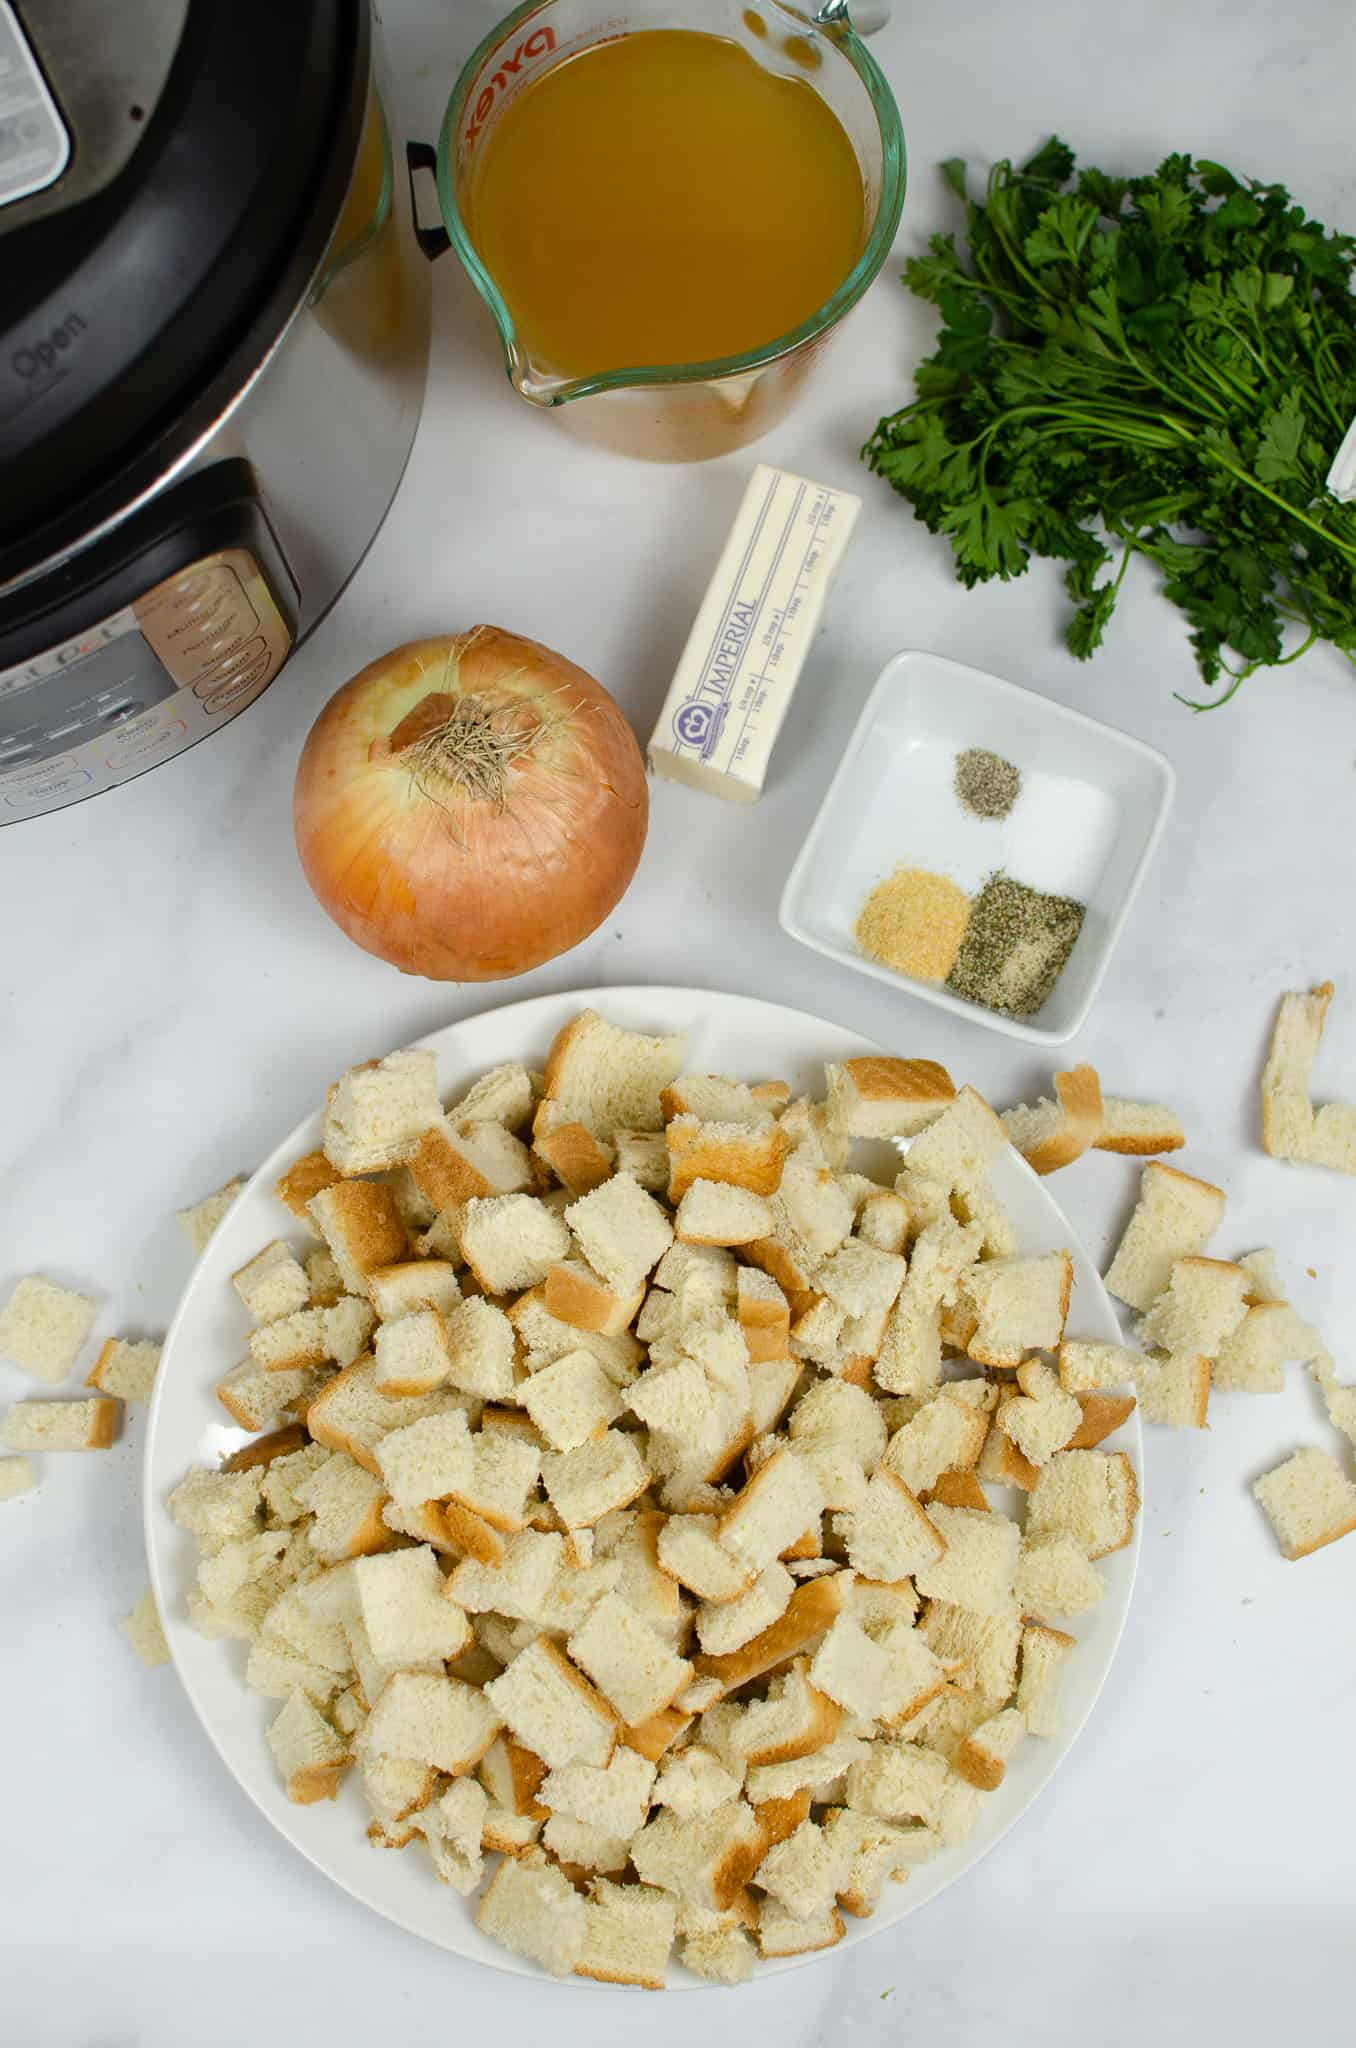 Ingredients for Instant Pot Stuffing